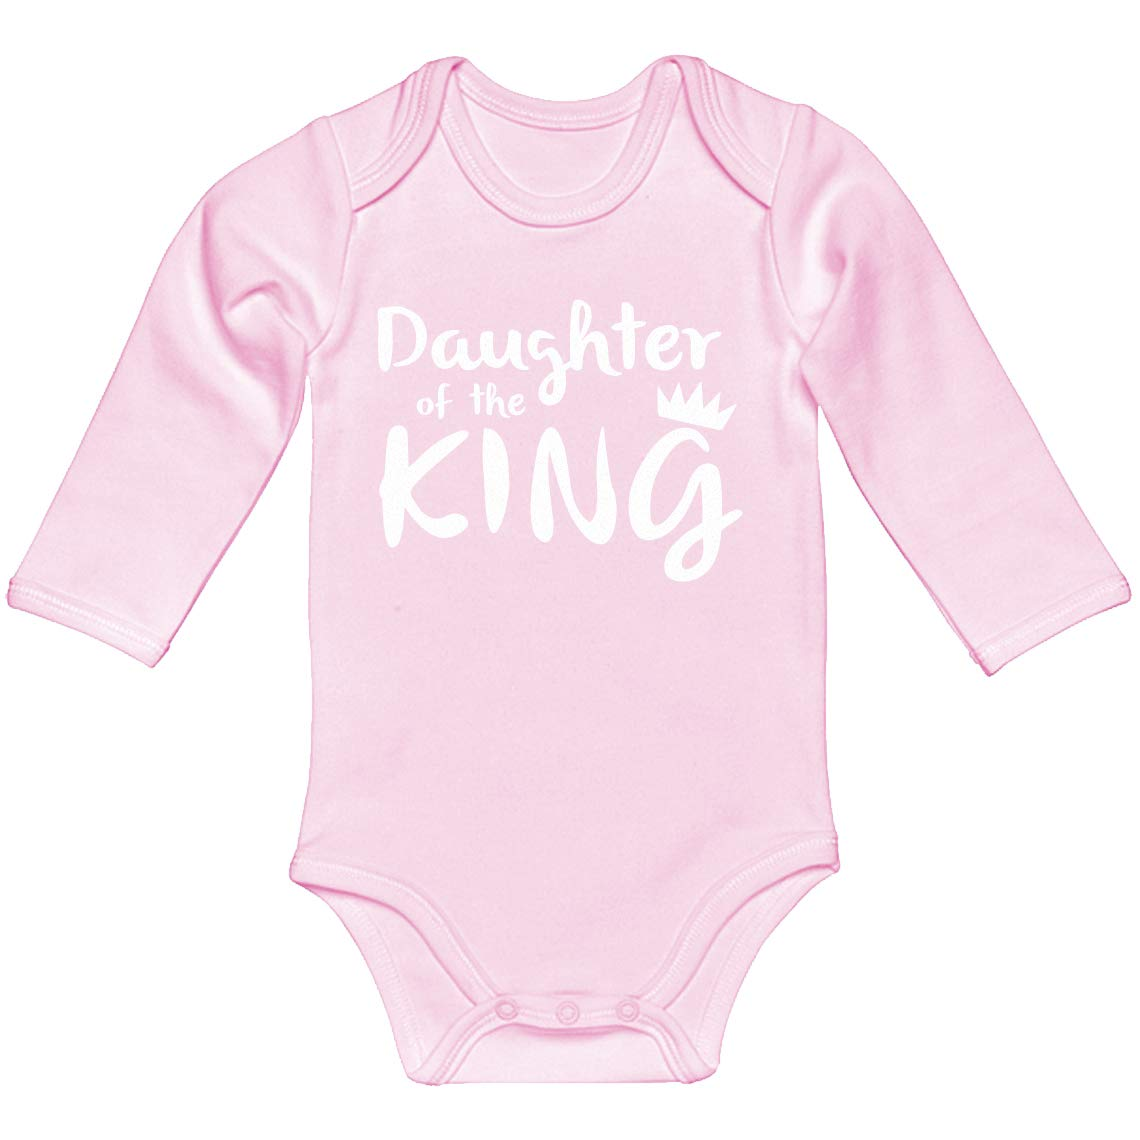 Baby Romper Daughter of The King 100/% Cotton Long Sleeve Infant Bodysuit